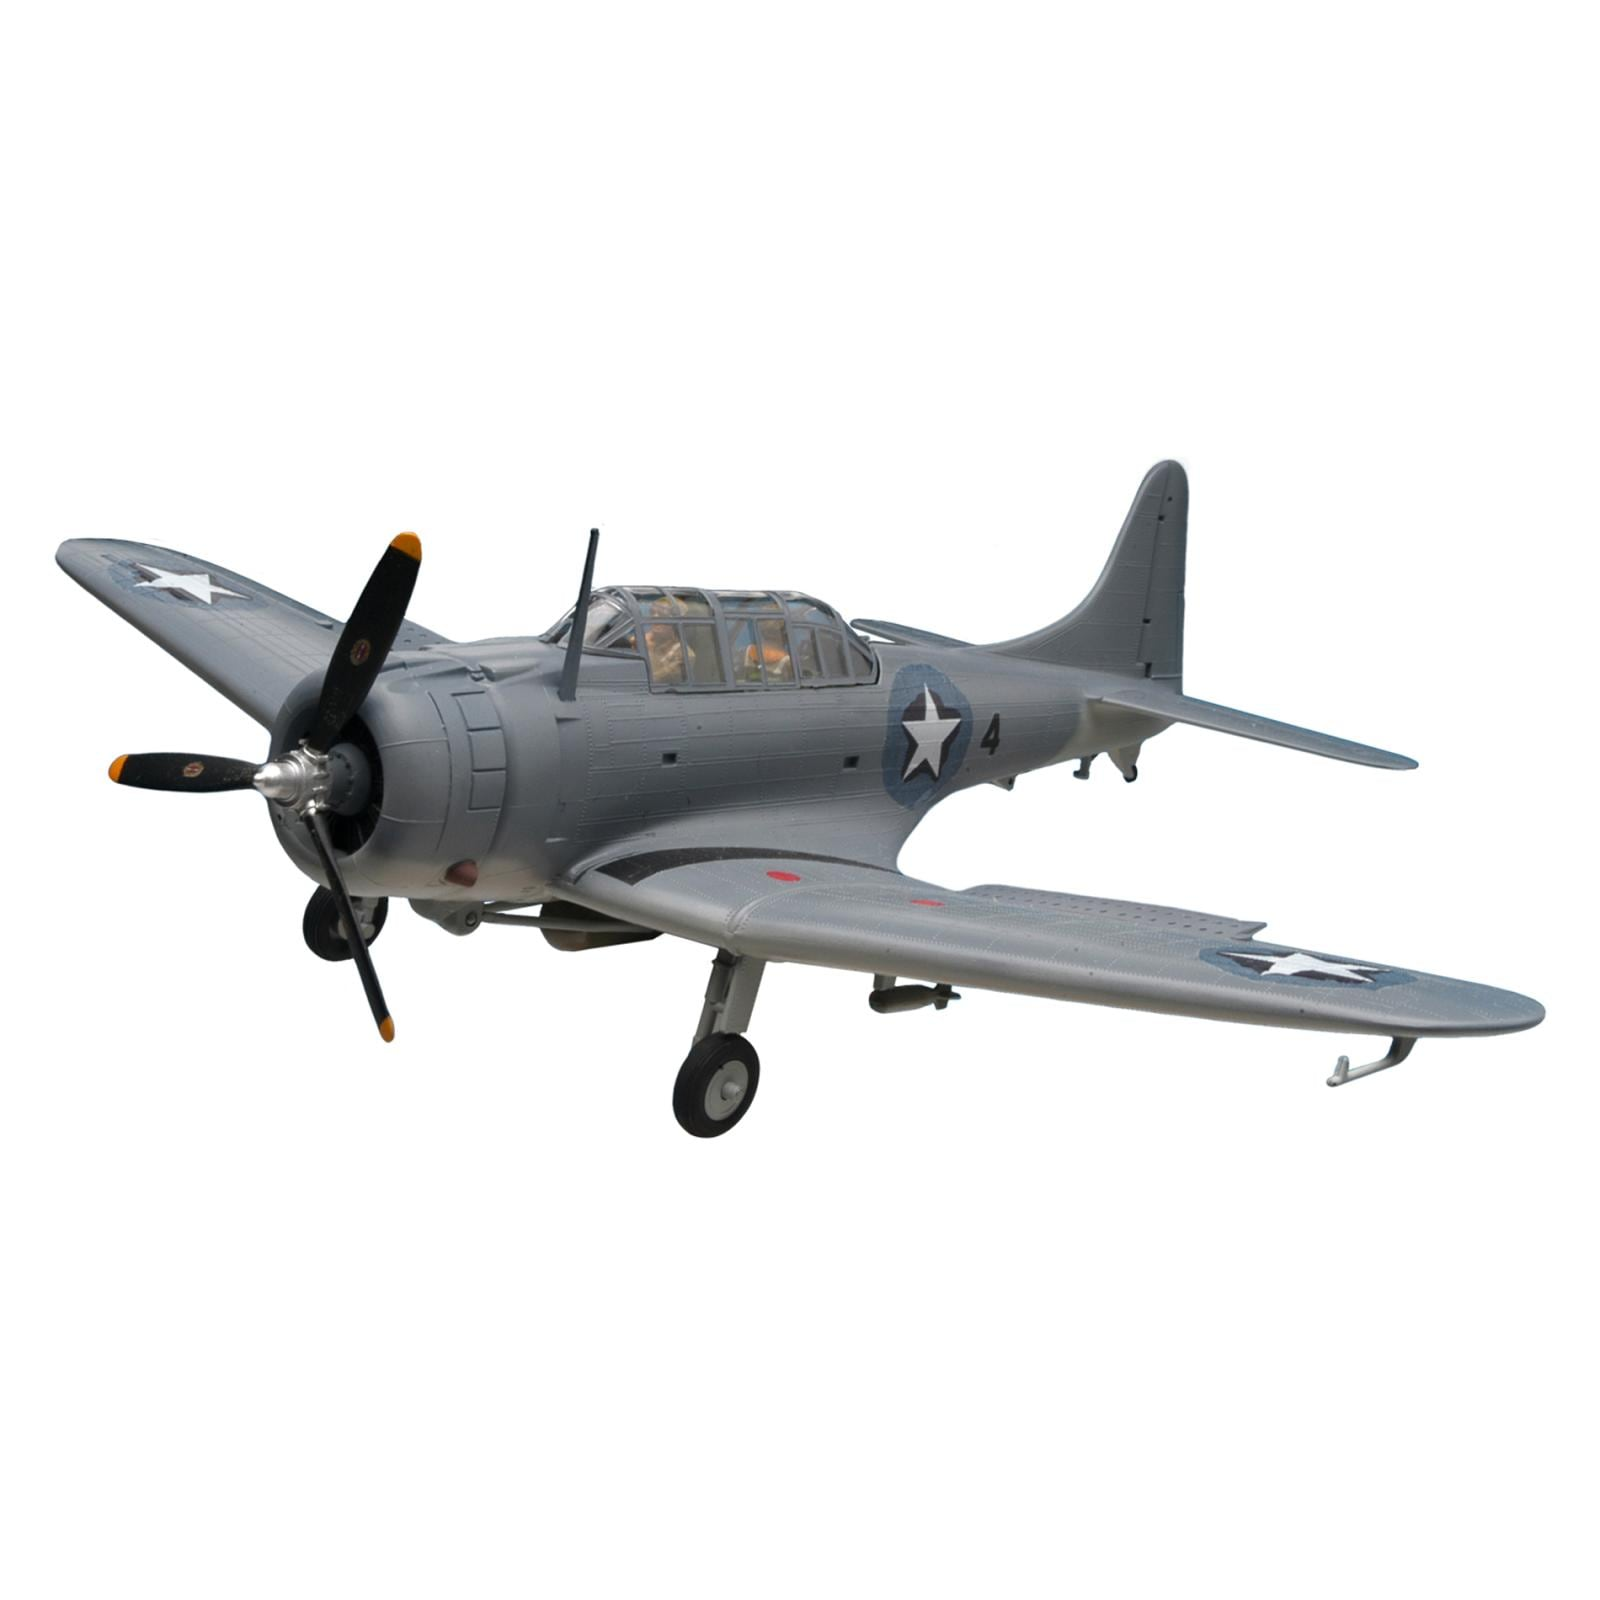 Revell 1:48 Scale SBD Dauntless Plastic Model Kit